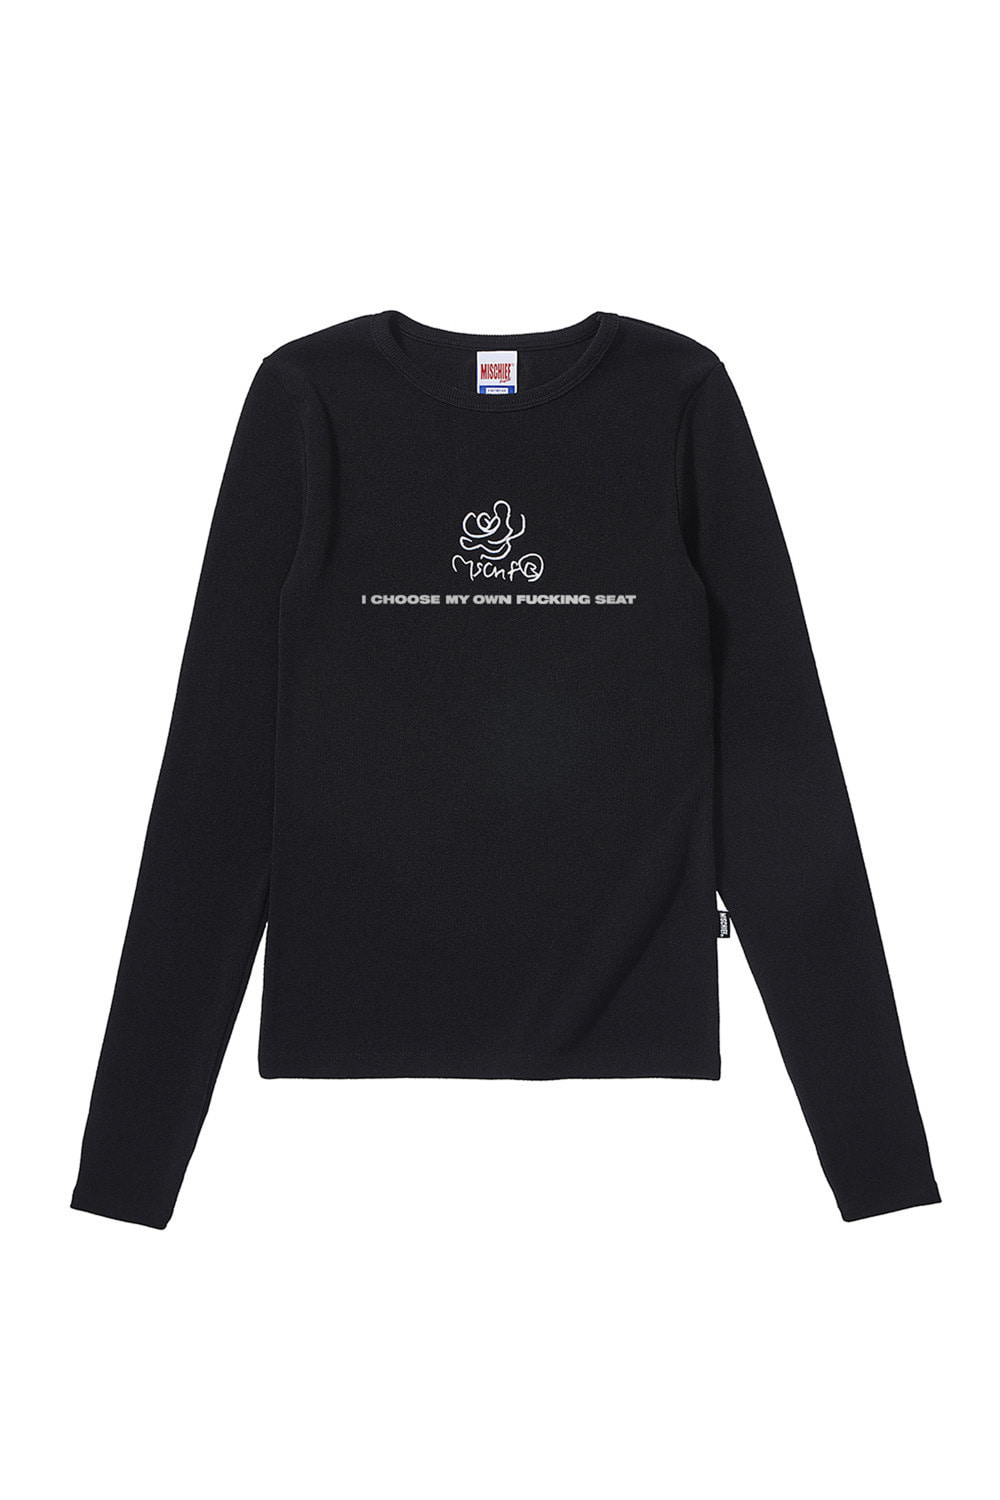 LIM KIM X MSCHF_FITTED ROSE LONG SLEEVE_black